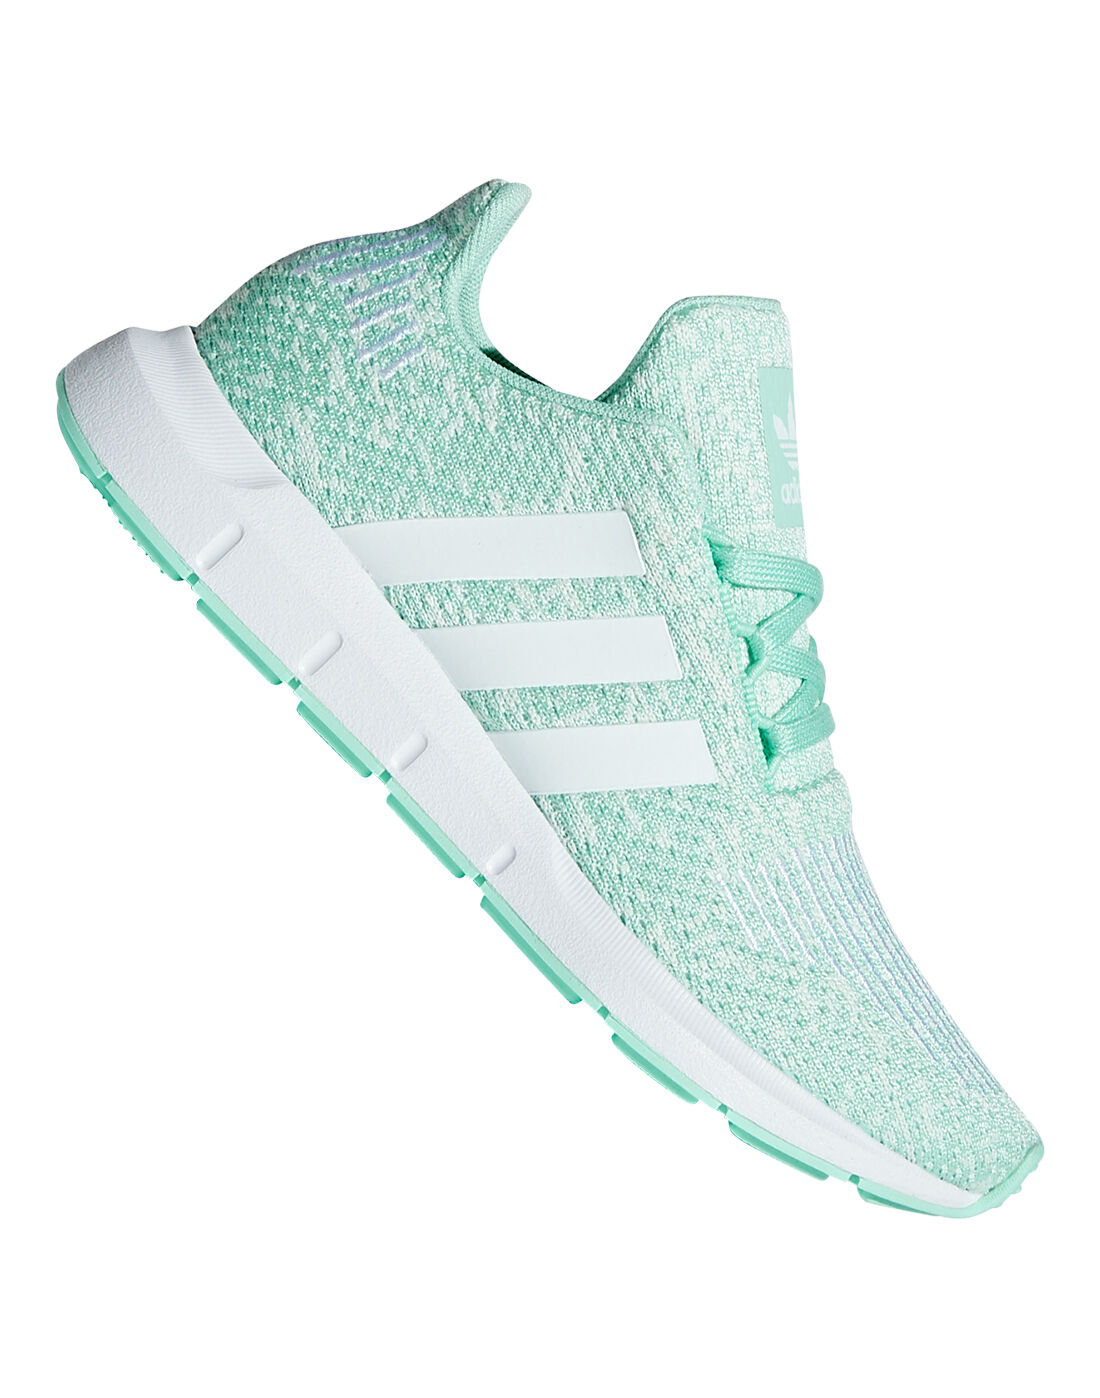 Girl's Green adidas Originals Swift Trainers | Life Style Sports